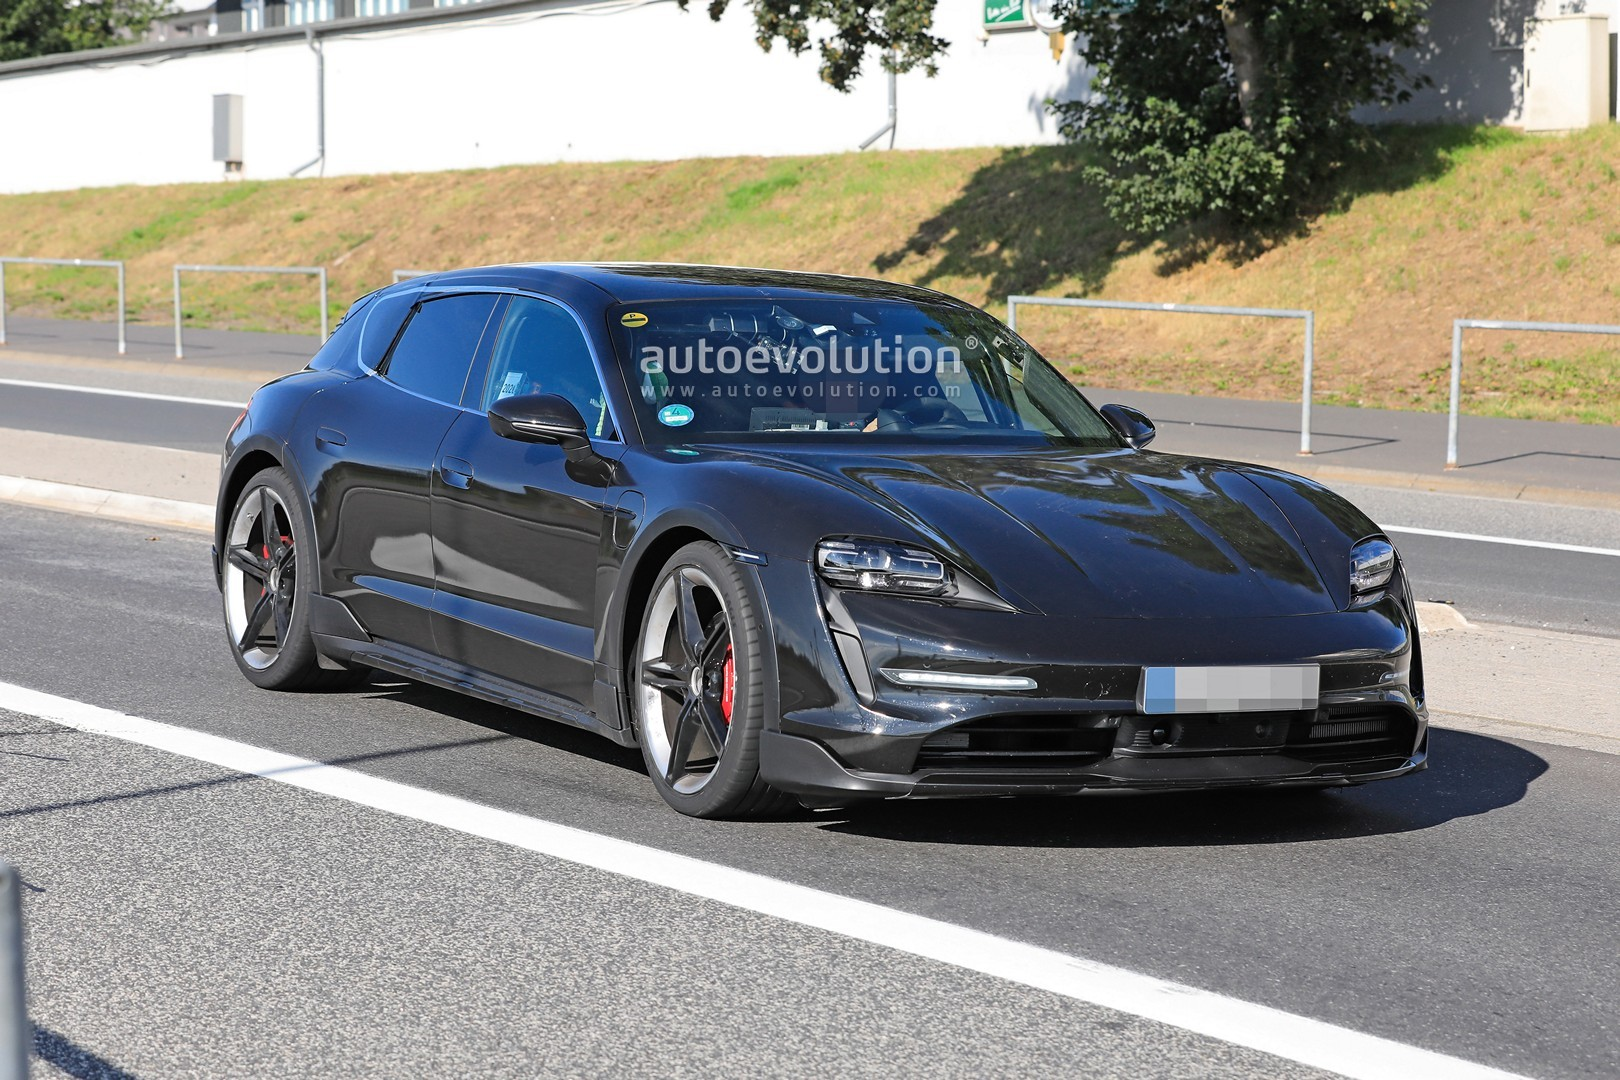 2020 - [Porsche] Taycan Sport Turismo - Page 2 Porsche-taycan-cross-turismo-spied-testing-hard-at-the-nurburgring_10